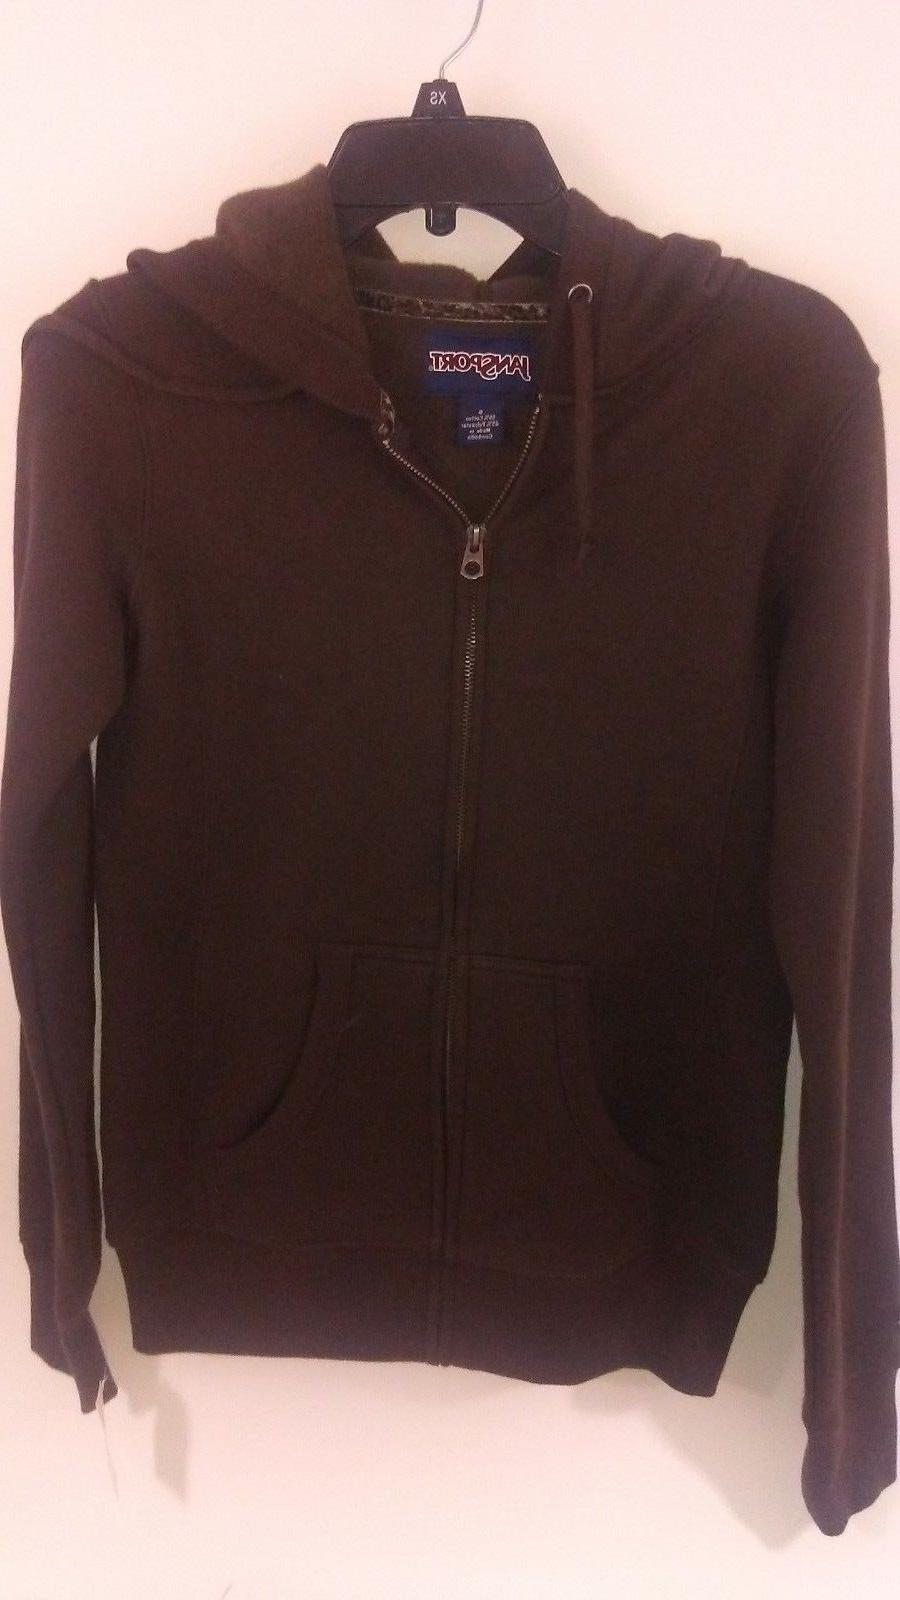 WOMEN'S JANSPORT HOODIE BROWN NEW WITH TAG SIZE SMALL